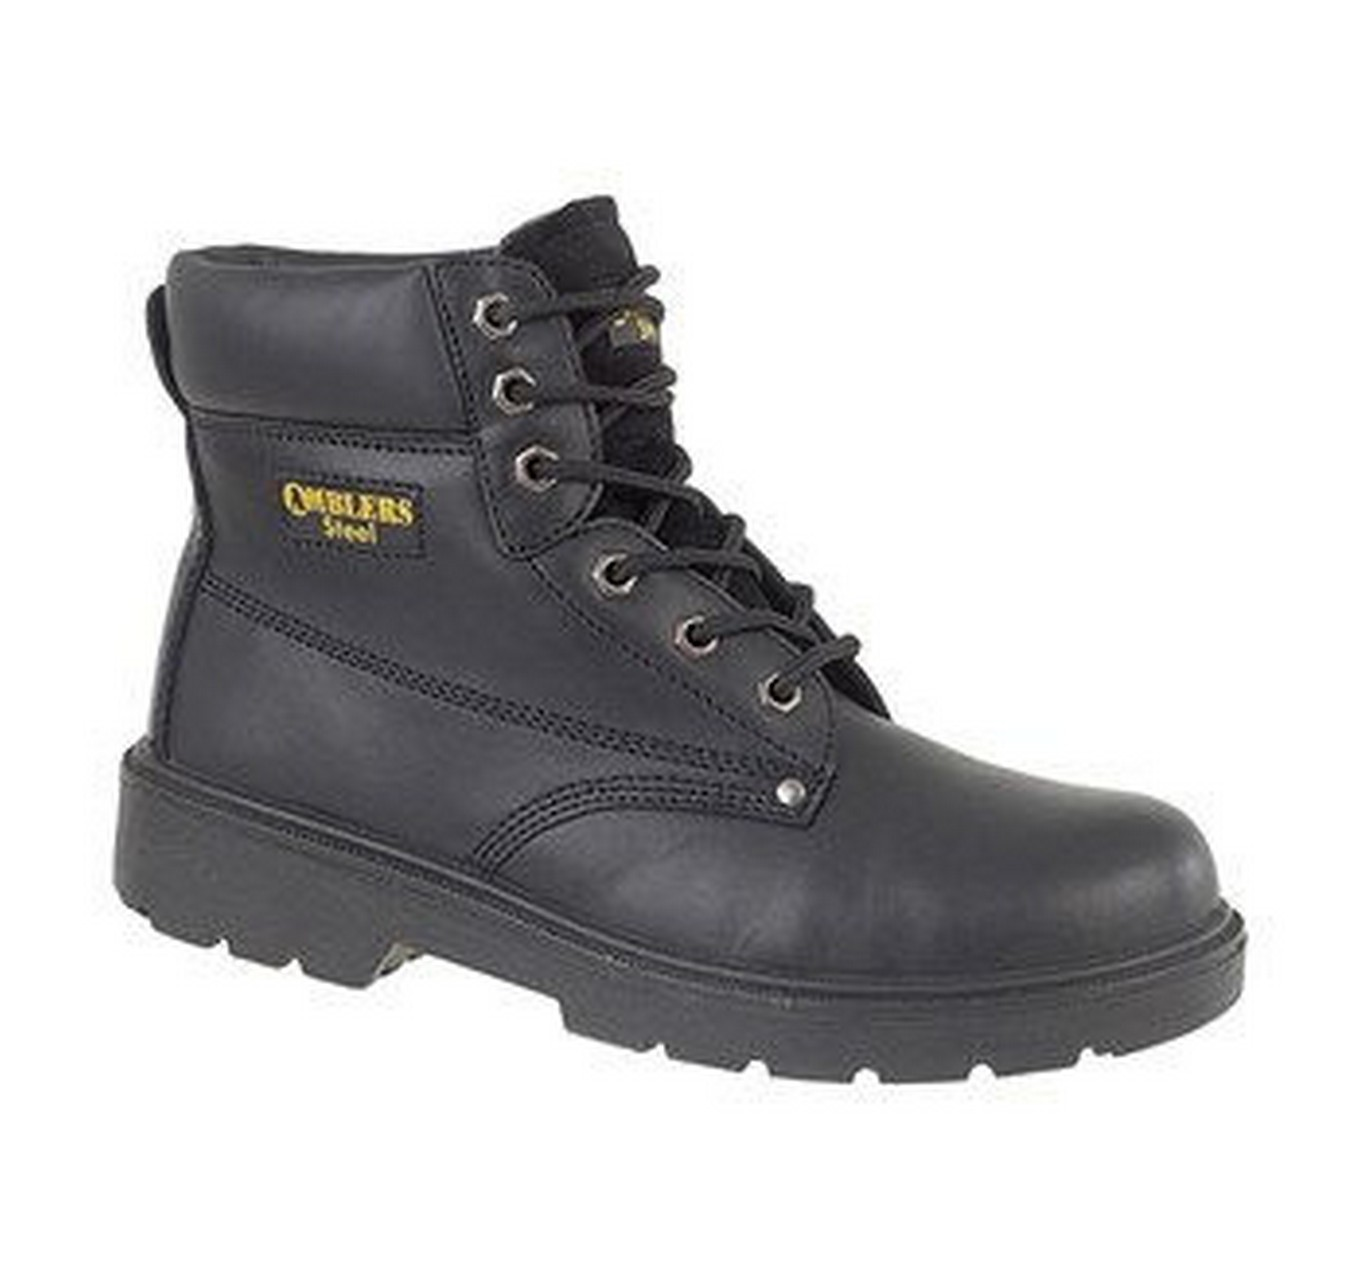 Safety Boot Amblers Fs159 10